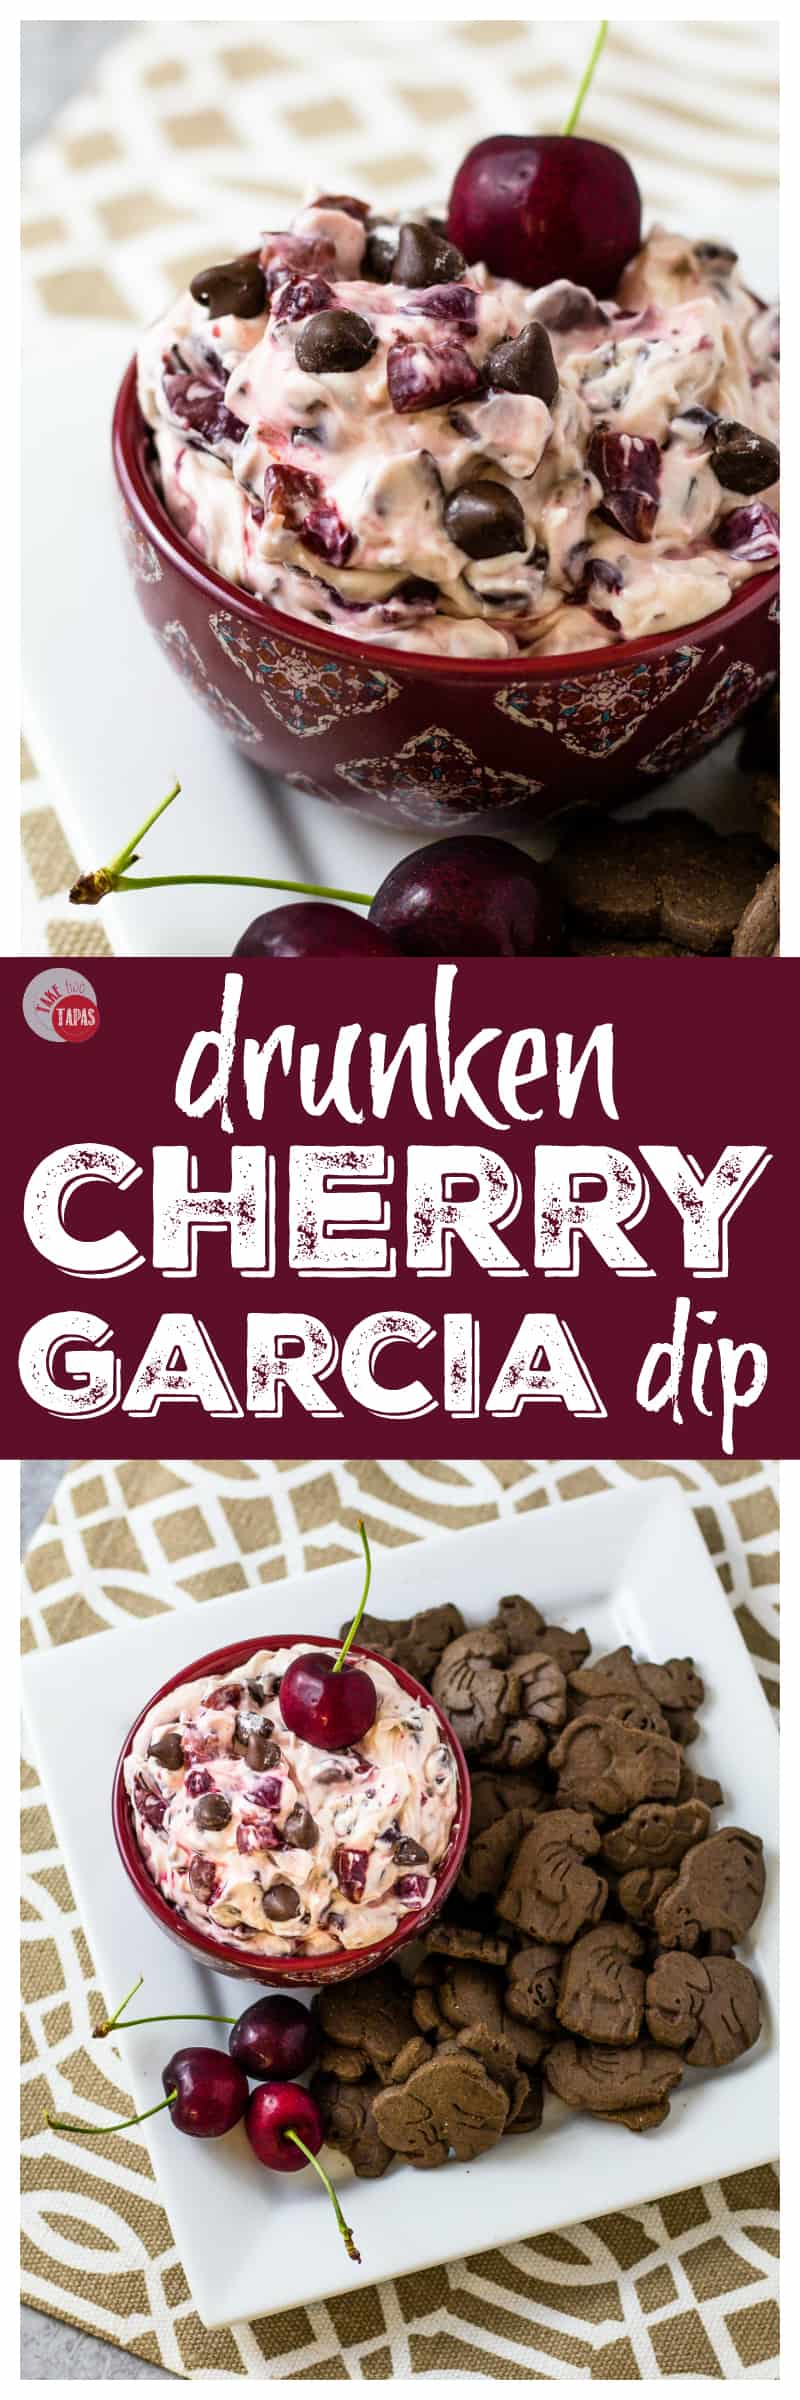 Creamy Drunken Cherry Garcia Dip pinterest long collage